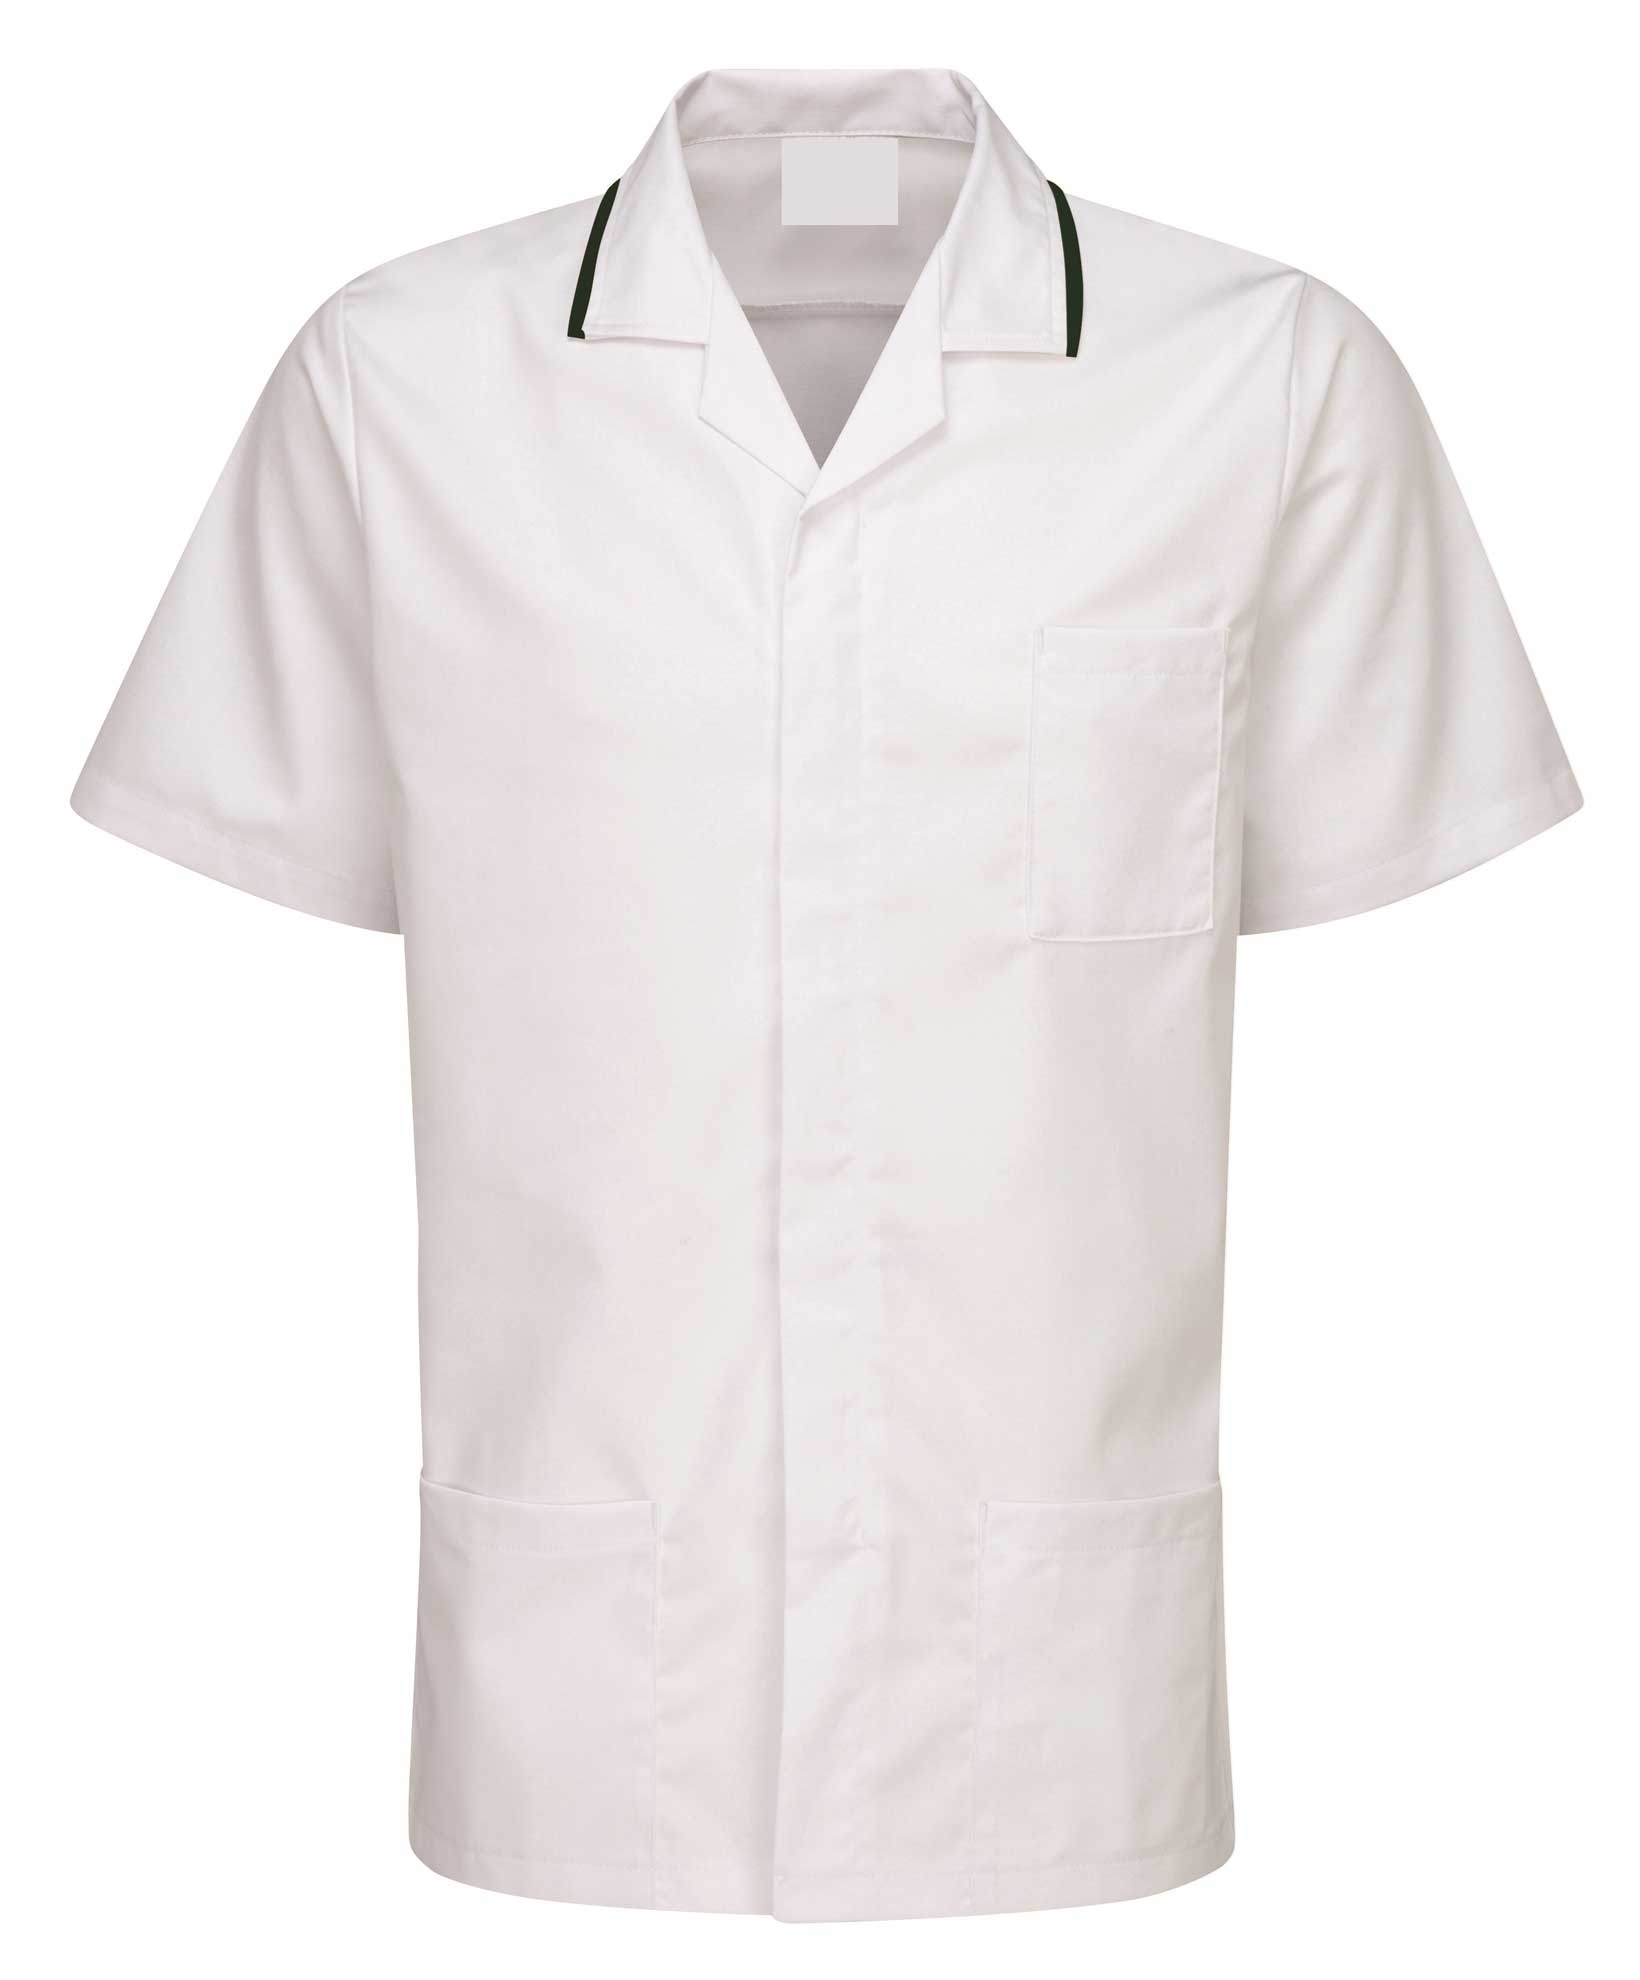 Picture of Advantage Front Fastening Tunic - White/Bottle Green